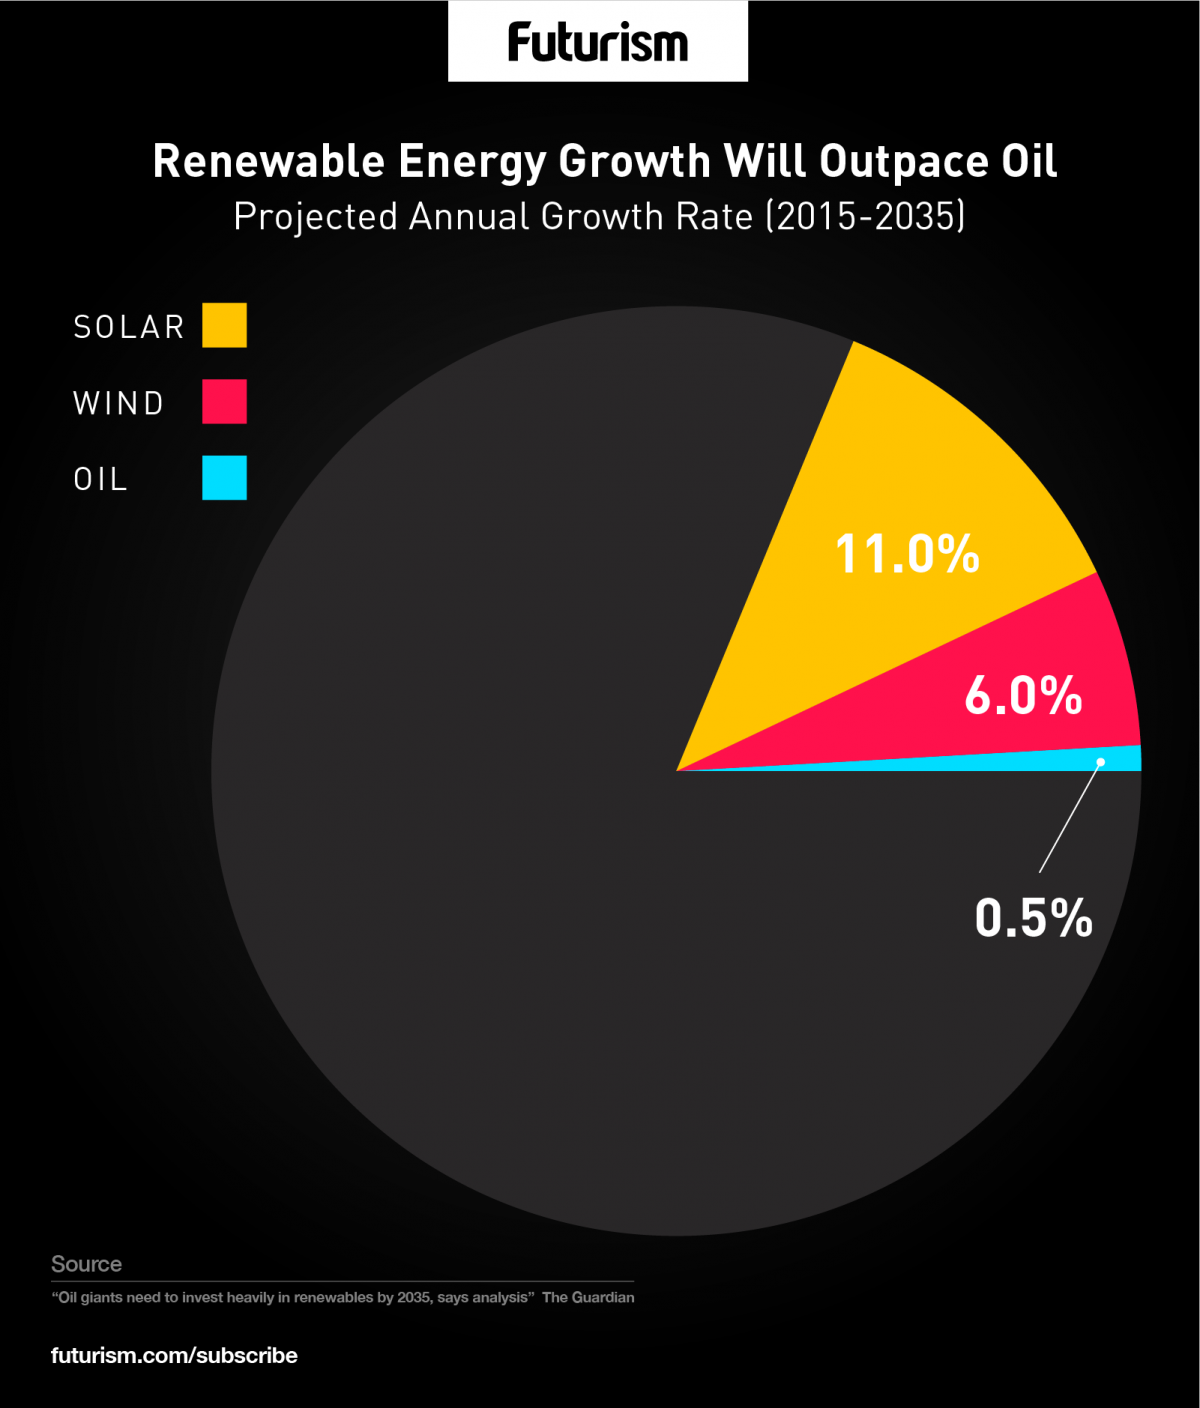 *4* Largest Oil and Gas Companies Must Invest Heavily in Renewables by 2035